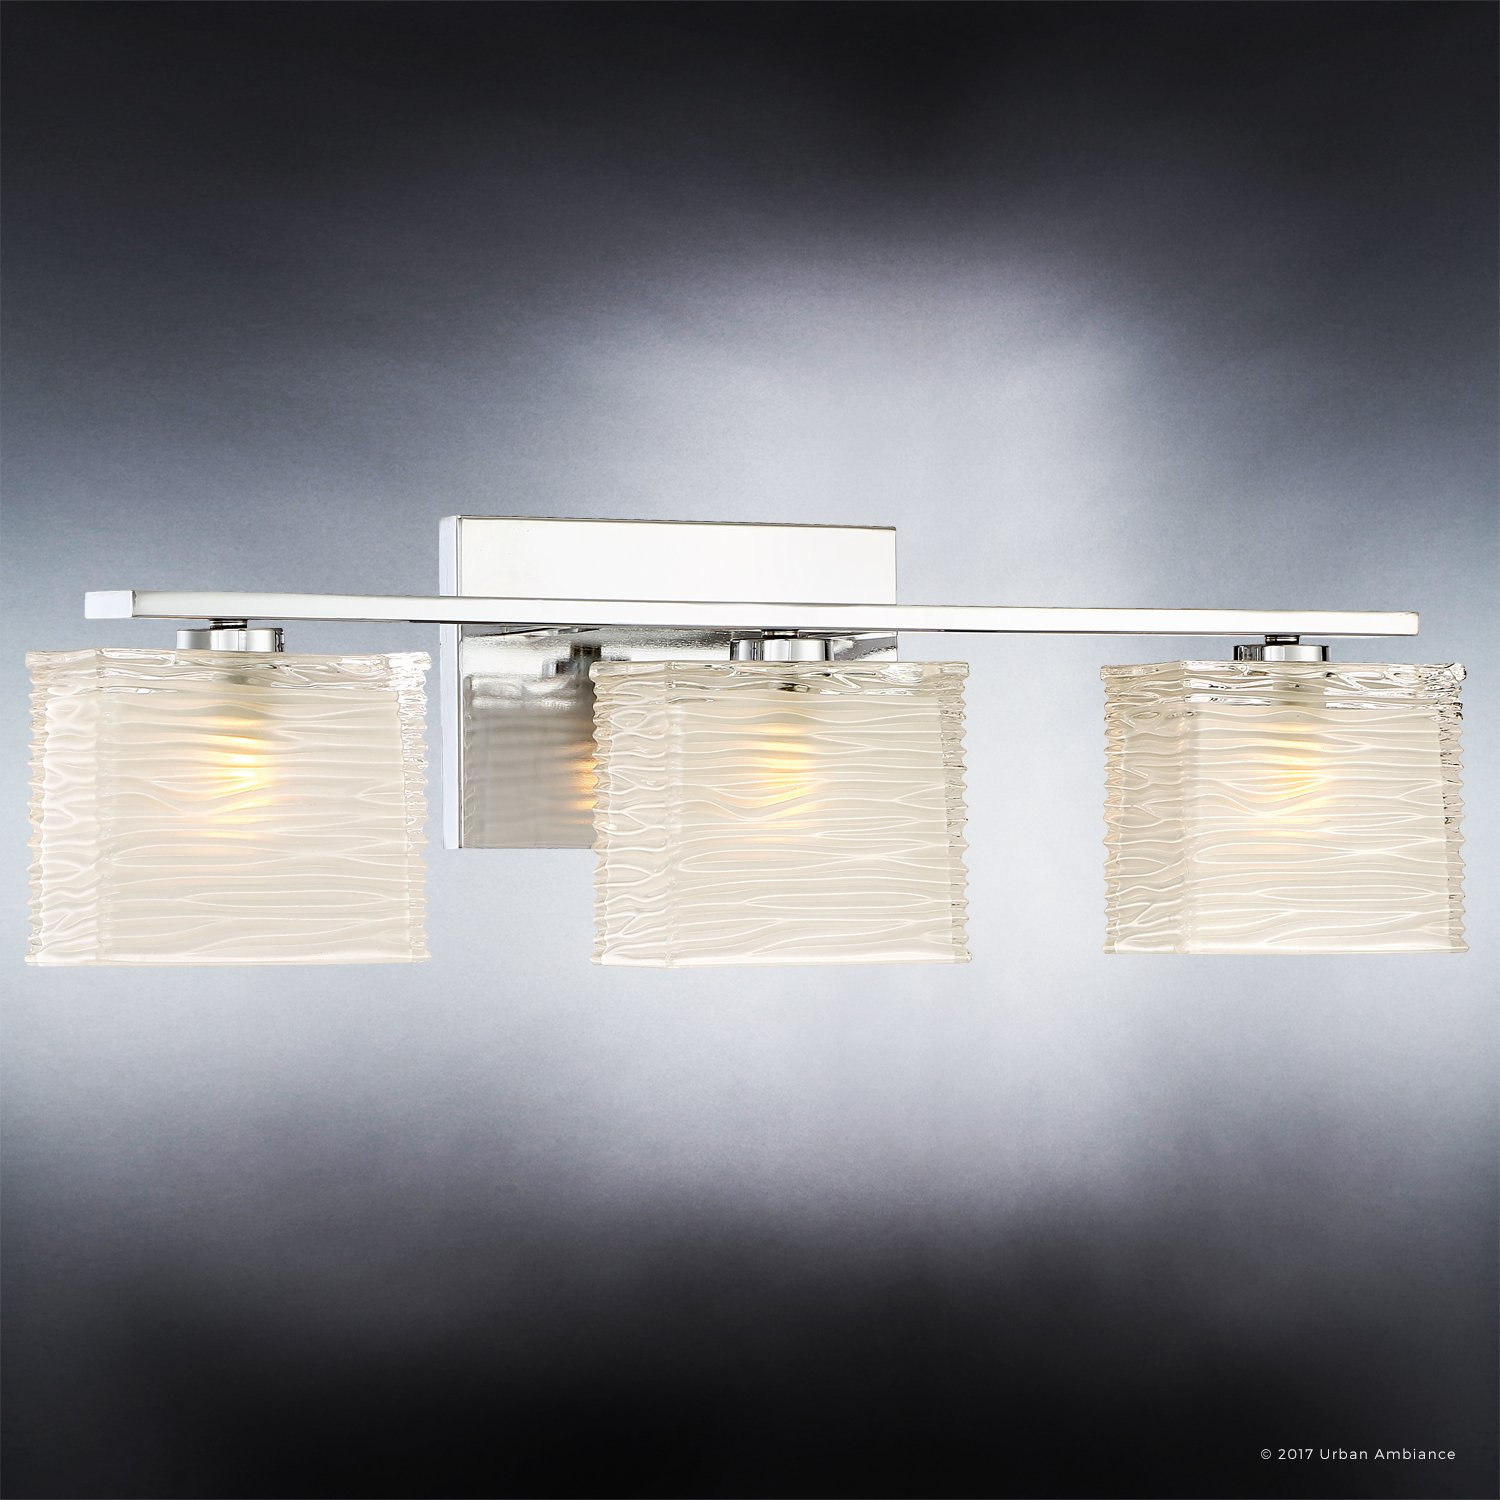 Luxury Modern Bathroom Light, Medium Size: 6.75''H x 22.5''W, with Style Elements, Polished Chrome Finish and Sandblasted Inner, Clear Wavy Outer Glass, G9 LED Technology, UQL2723 by Urban Ambiance by Urban Ambiance (Image #3)